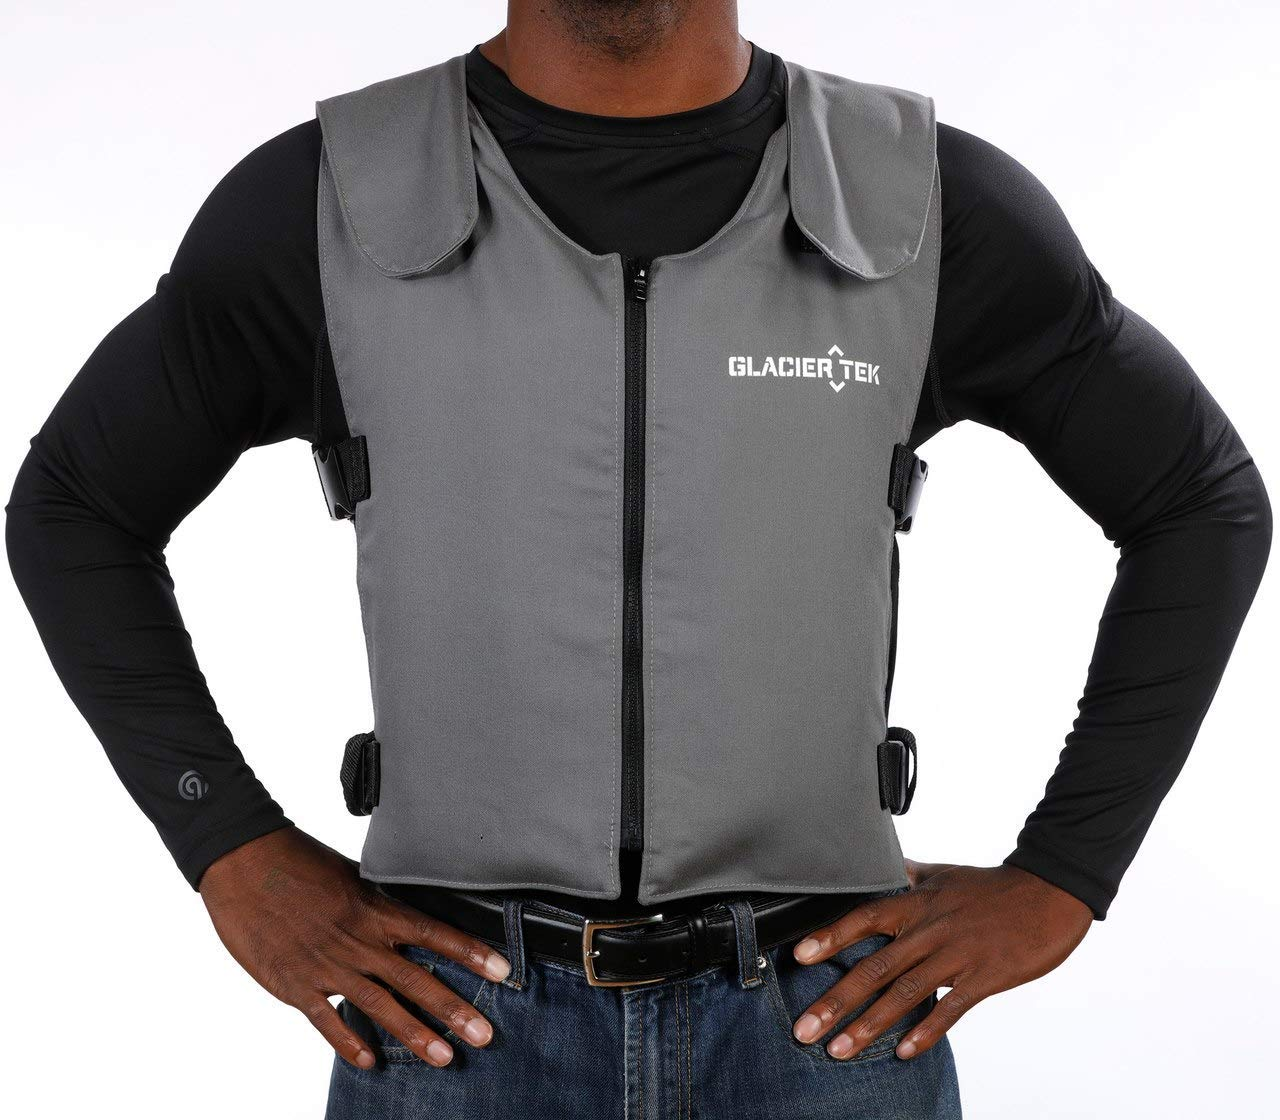 Glacier Tek Original Cool Vest with FR3 Flame-Retardant Banox Fabric and Nontoxic Cooling Packs Gray